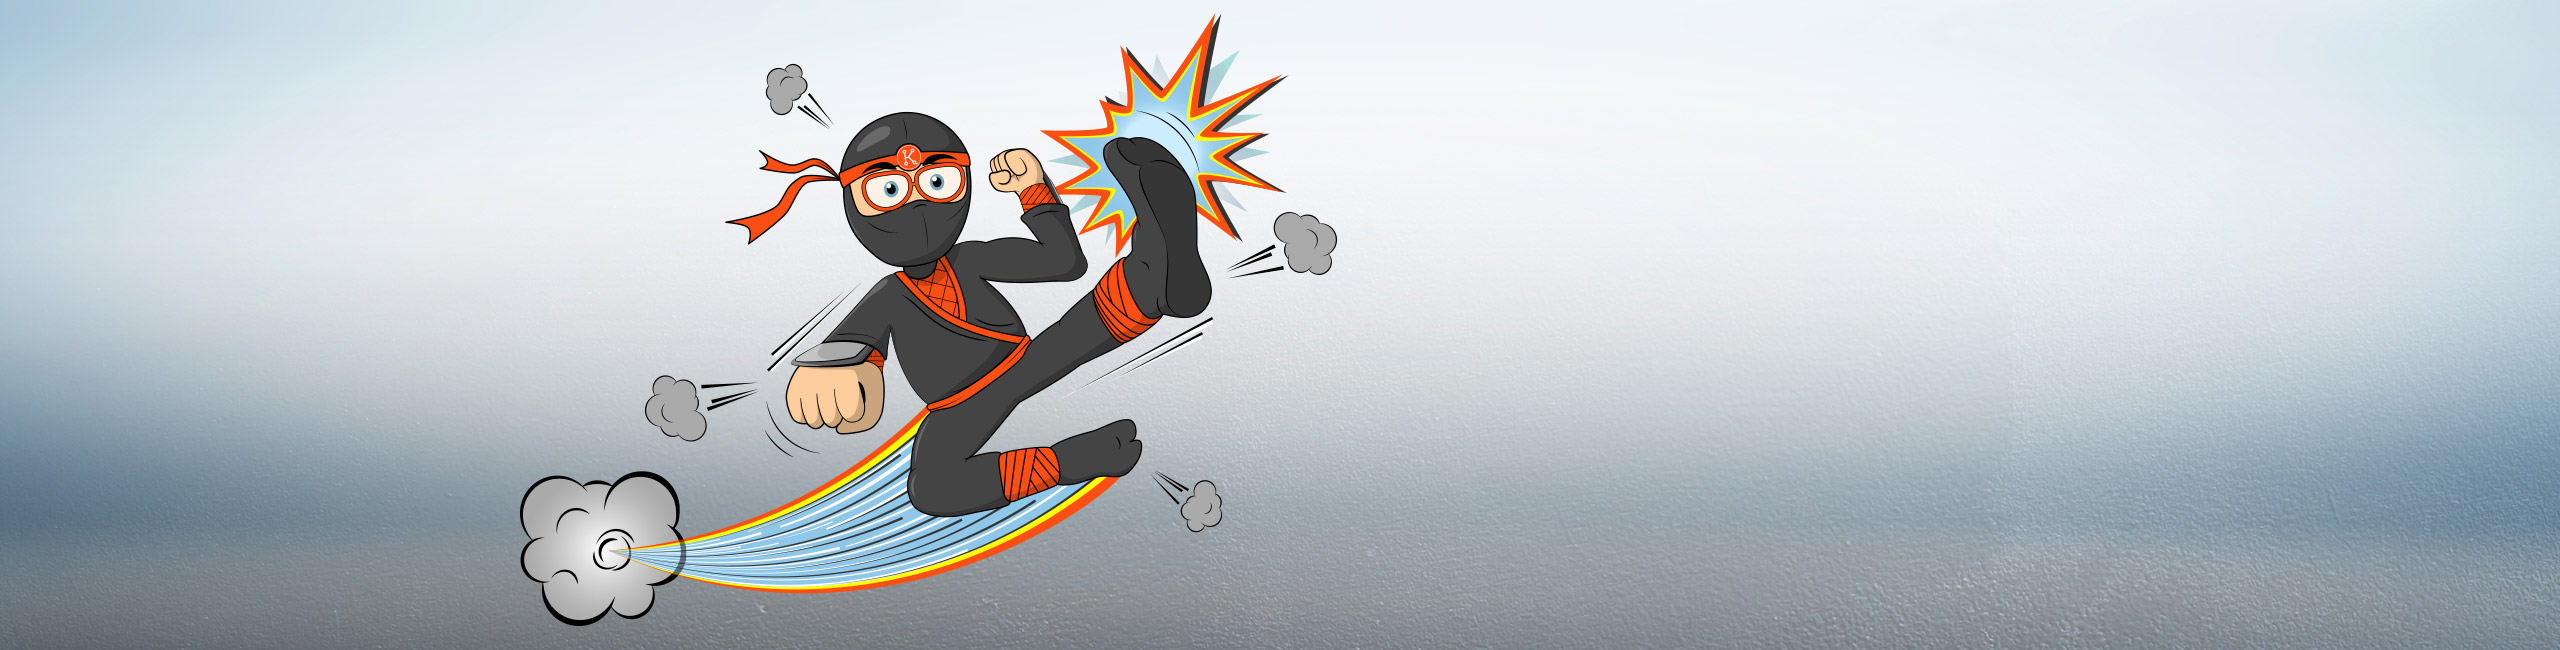 Become an IT Ninja with KACE and find your path to endpoint enlightenment. JP